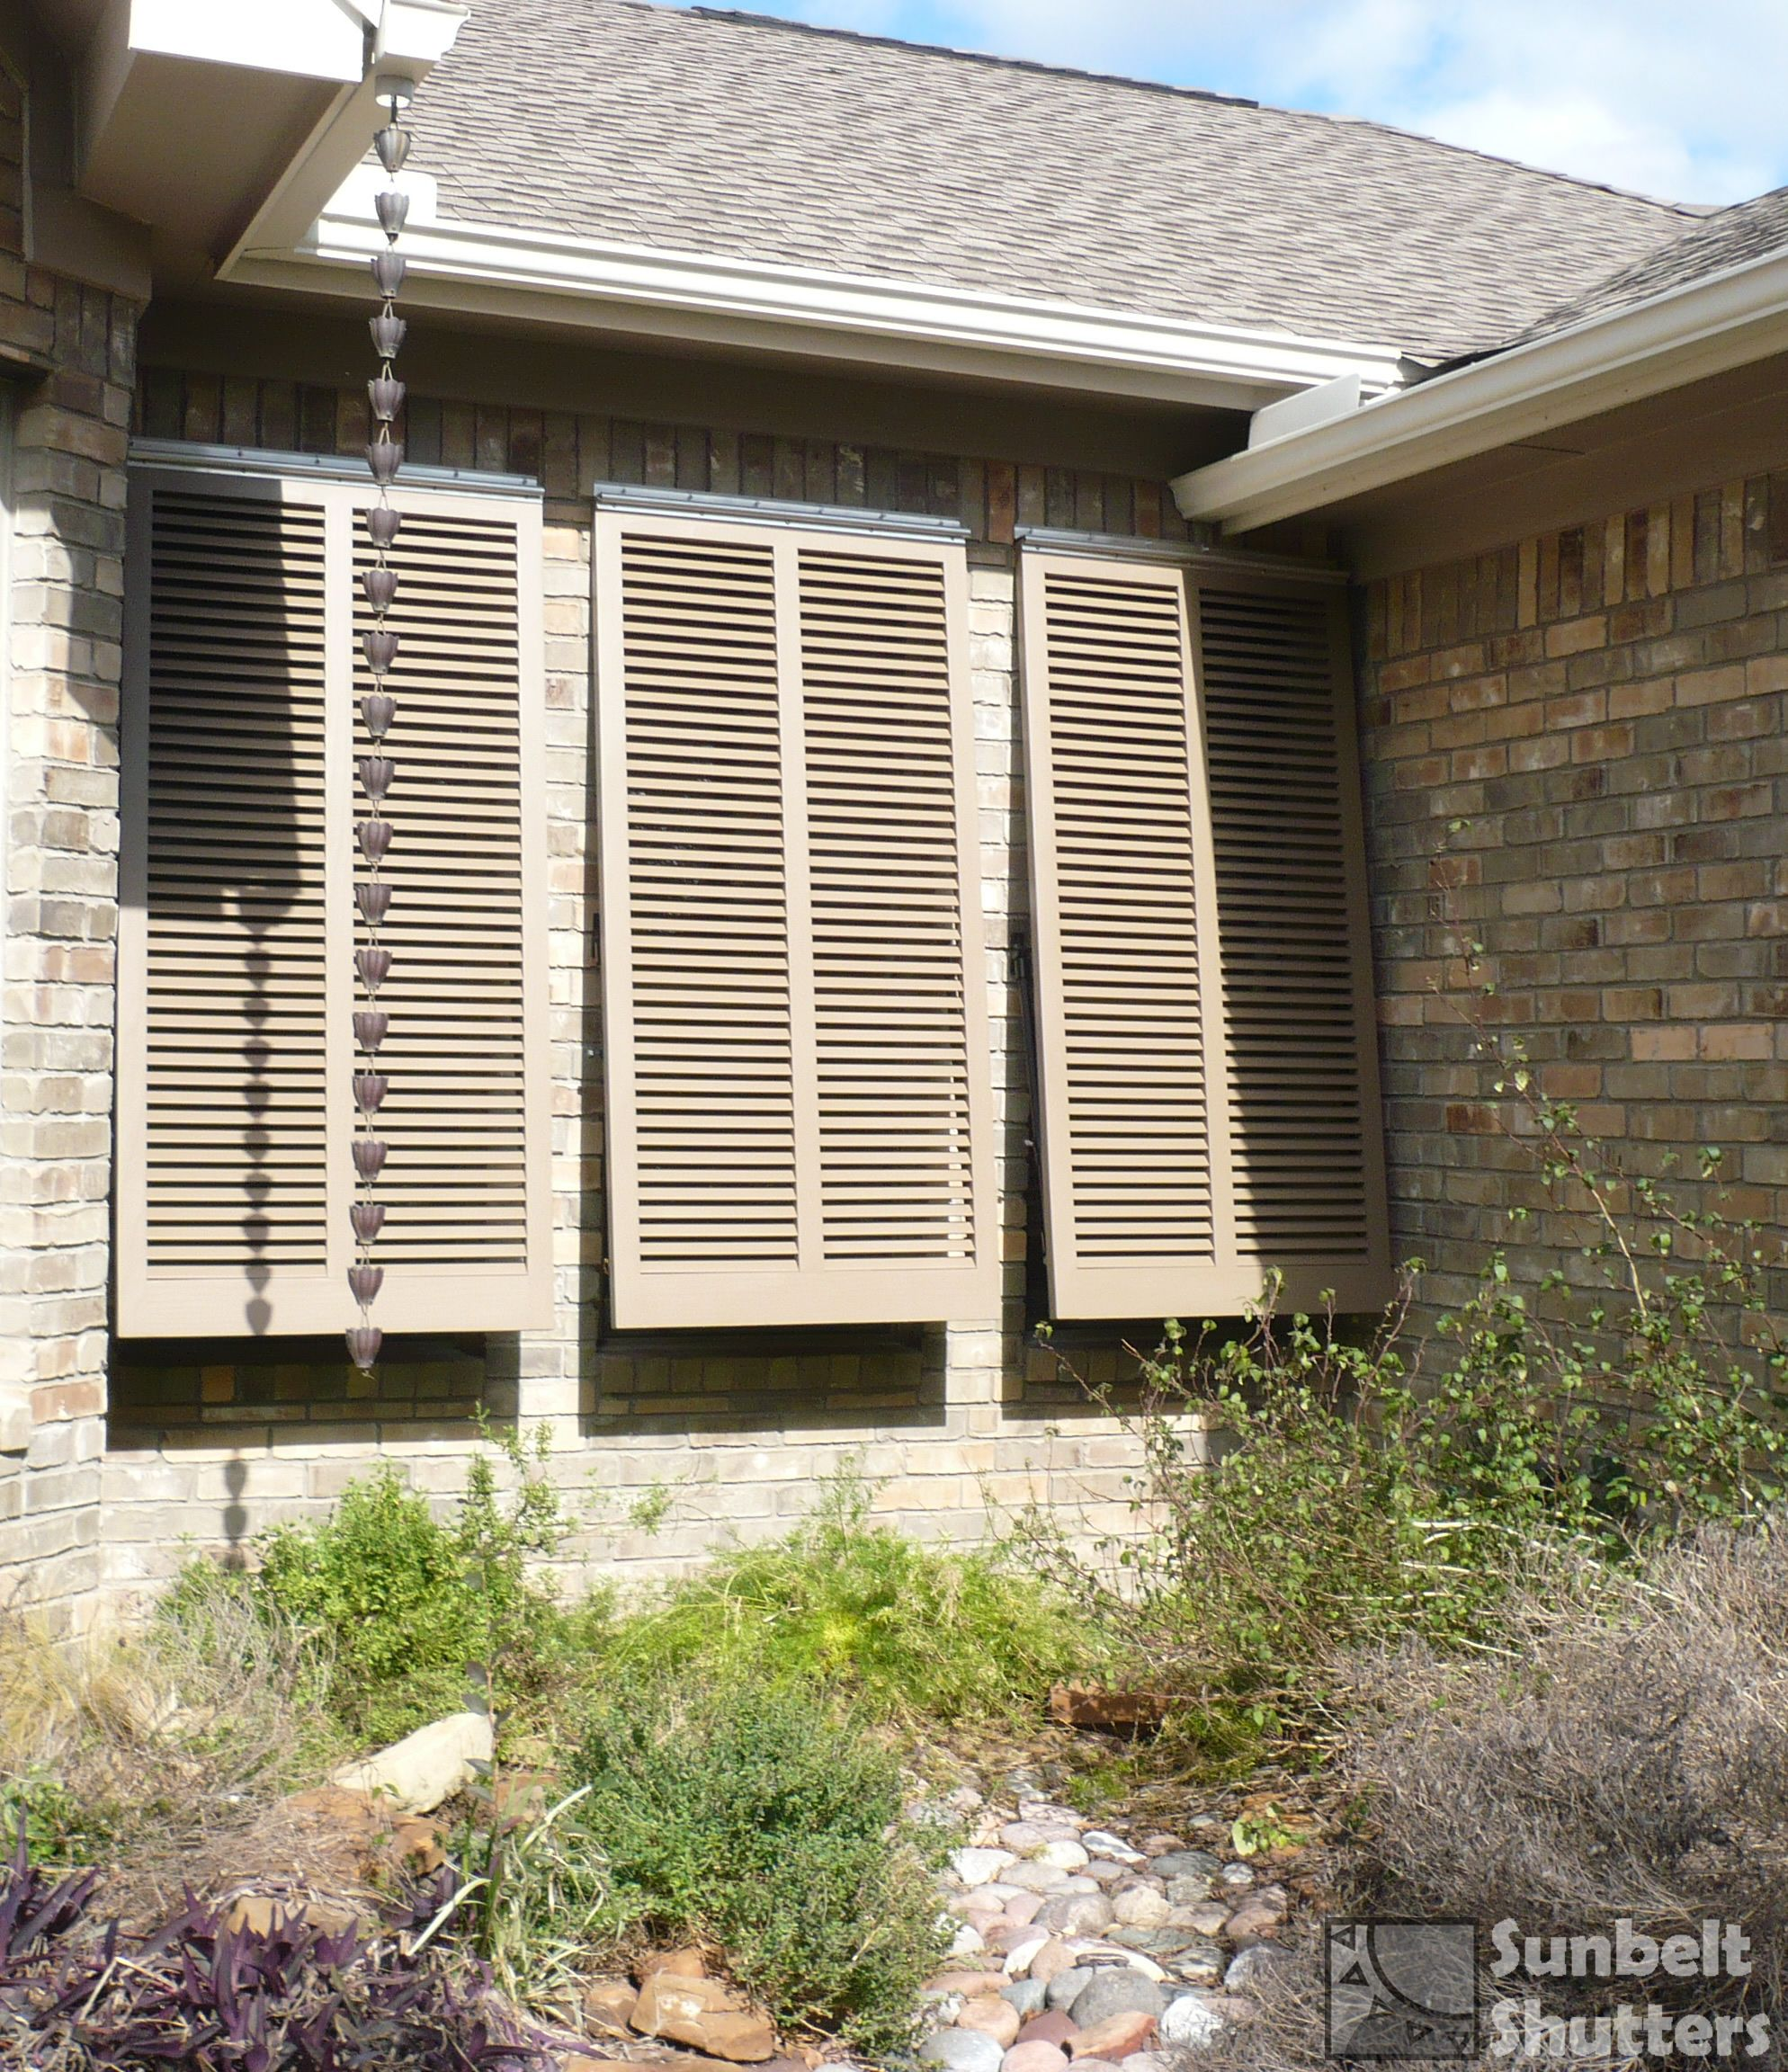 Cedar bahamas shutters with open louver style louvers at - Exterior louvered window shutters ...